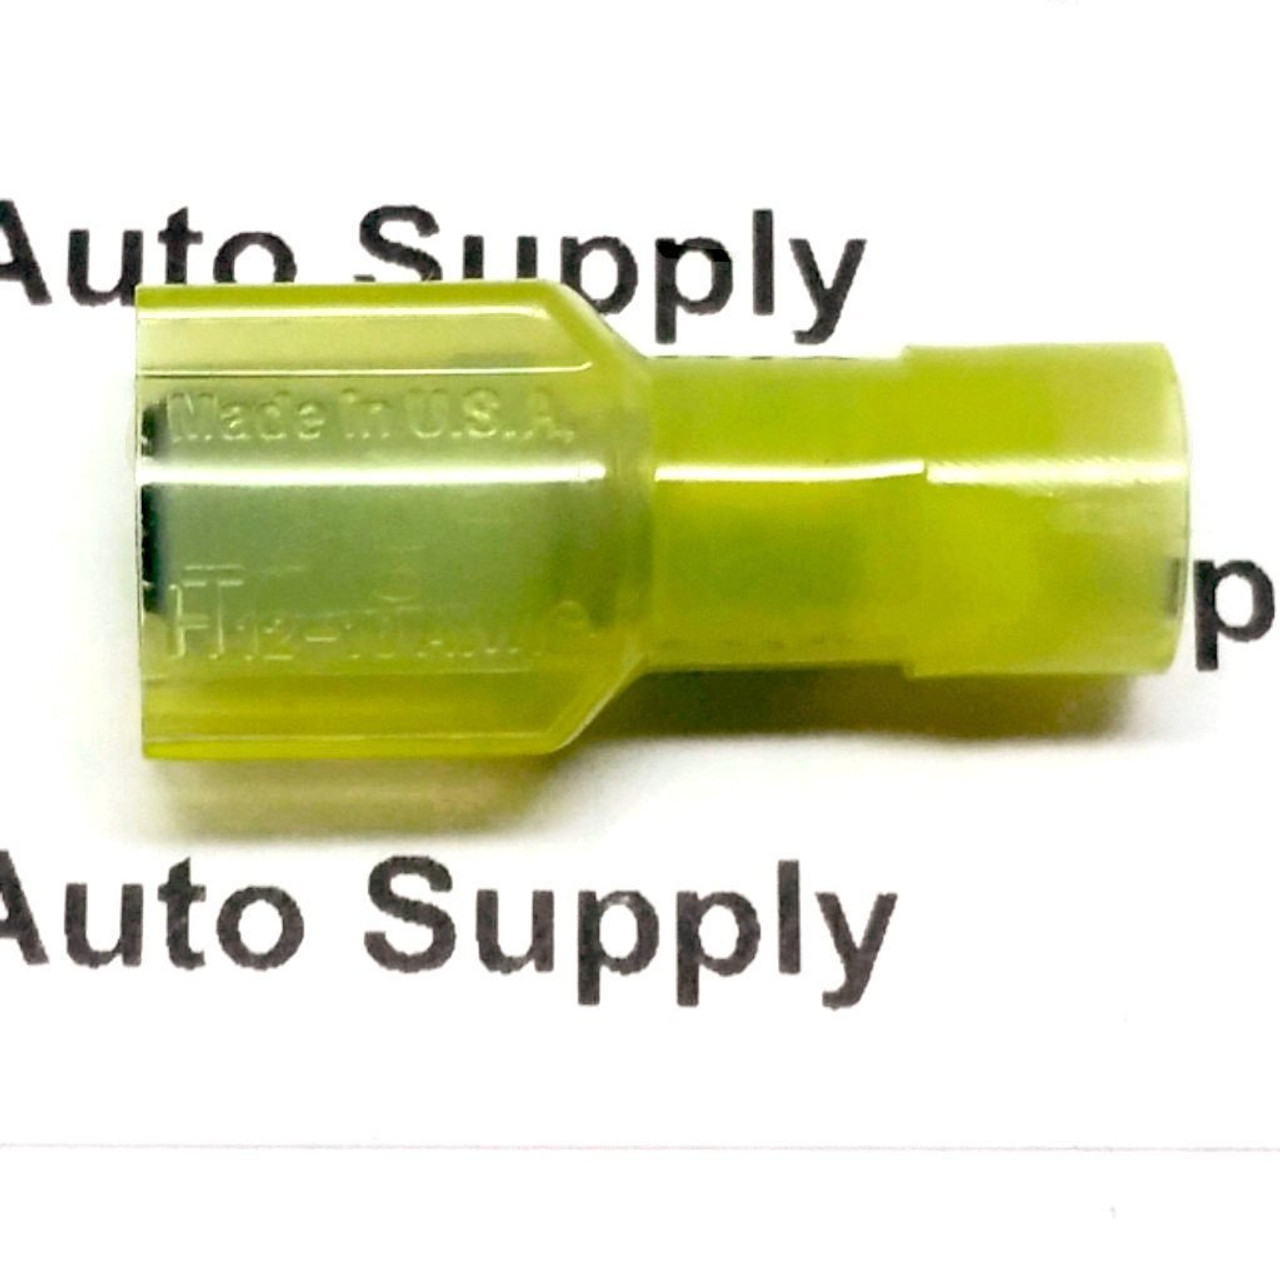 Yellow Male Quick Connect Terminal (Nylon) - BAS14465 - from Buy Auto Supply